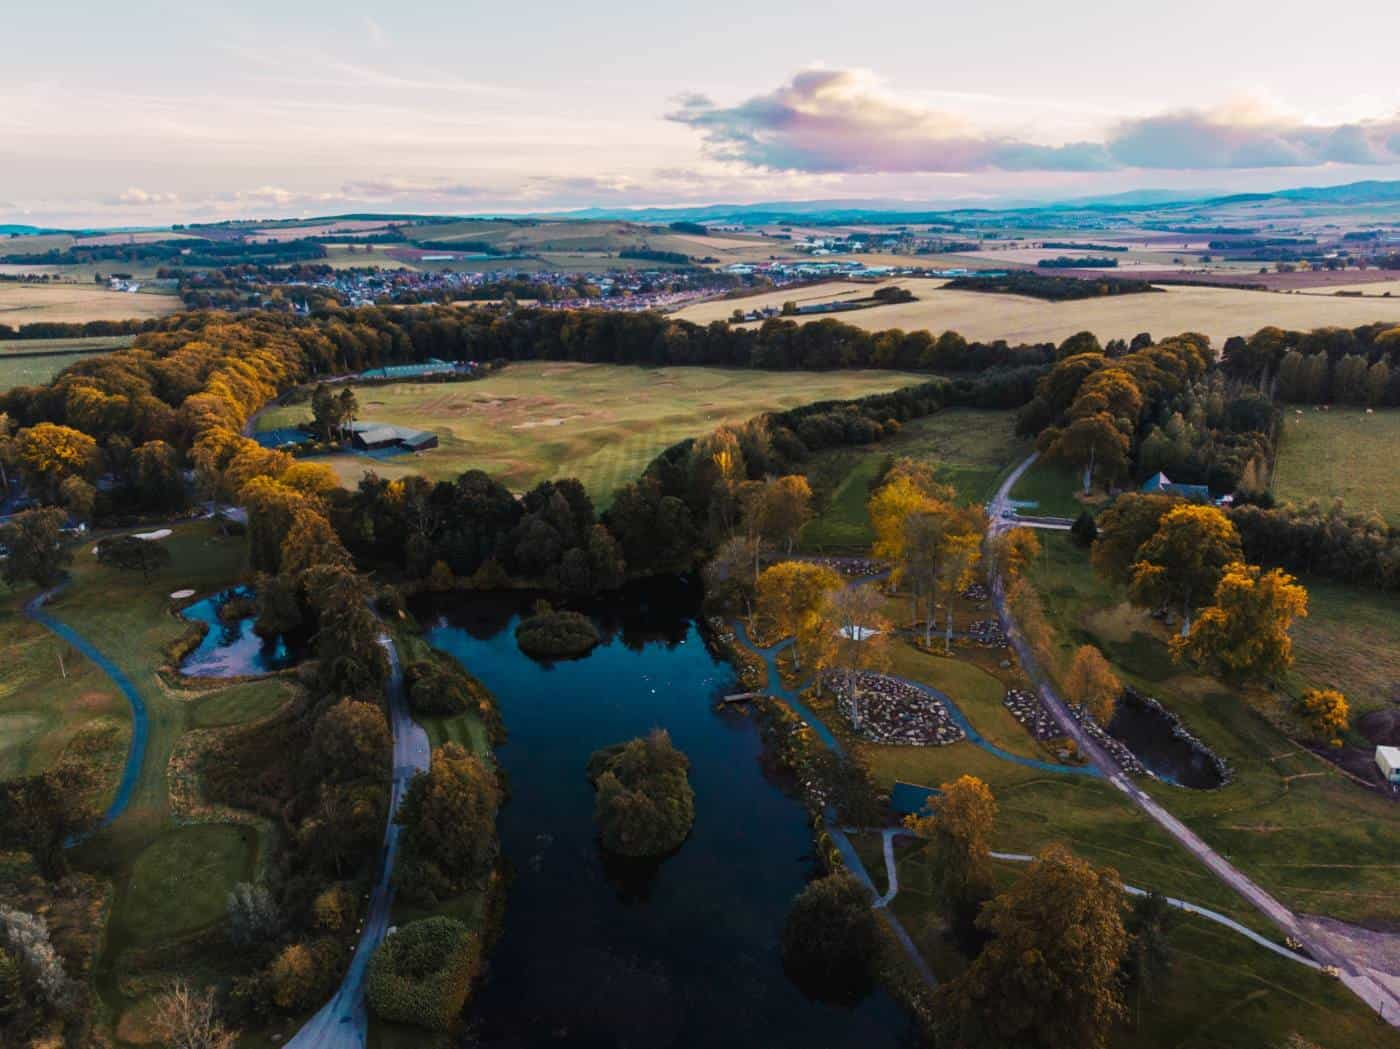 Aerial view of a river and green hills at Banchory Lodge in Aberdeenshire